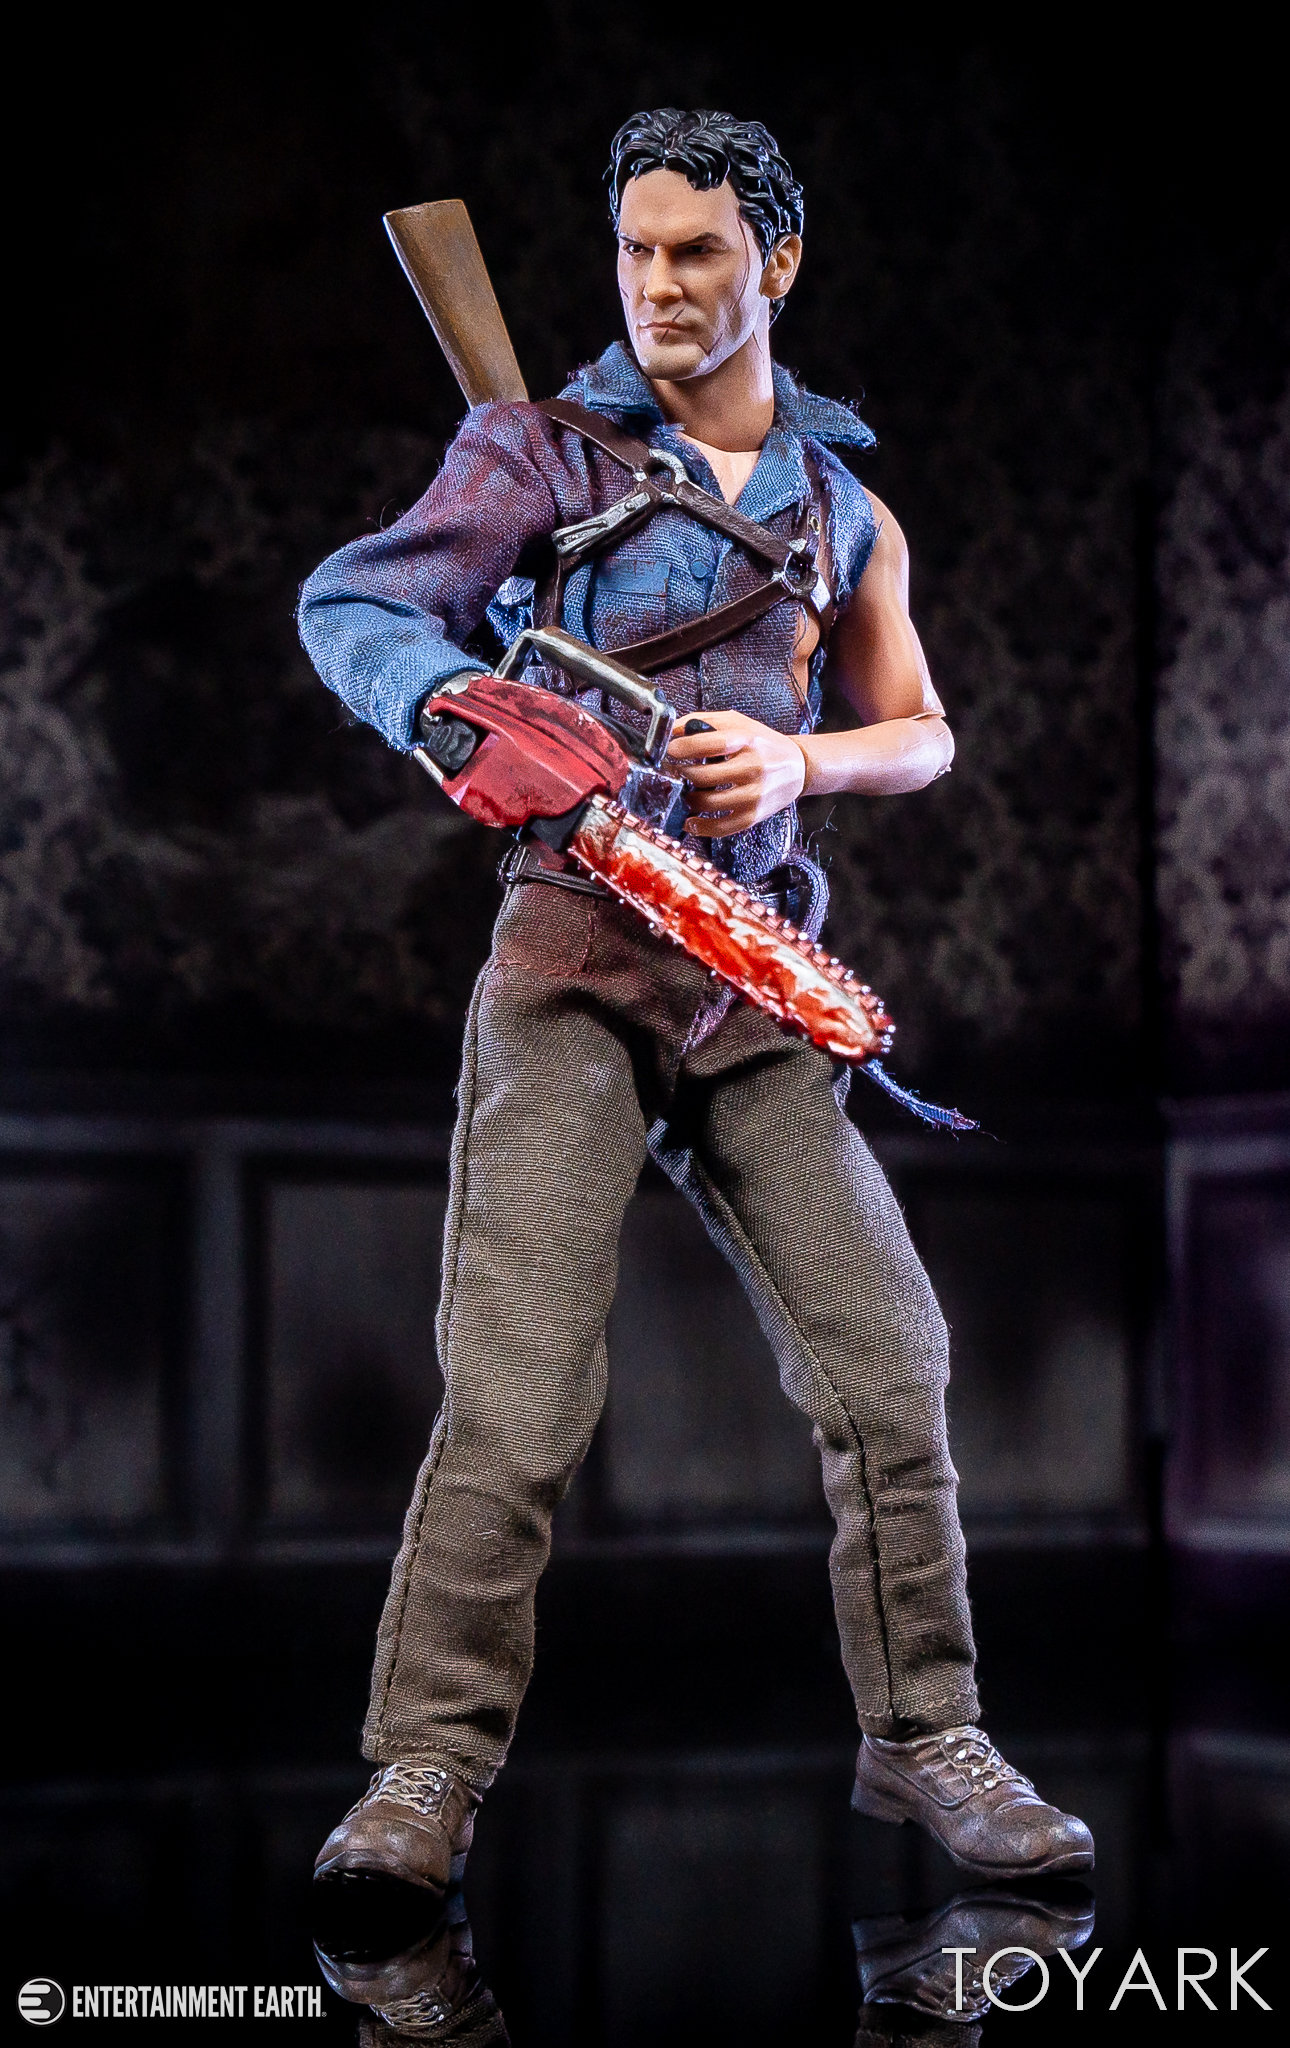 https://news.toyark.com/wp-content/uploads/sites/4/2019/01/Mezco-One12-Evil-Dead-2-Ash-014.jpg